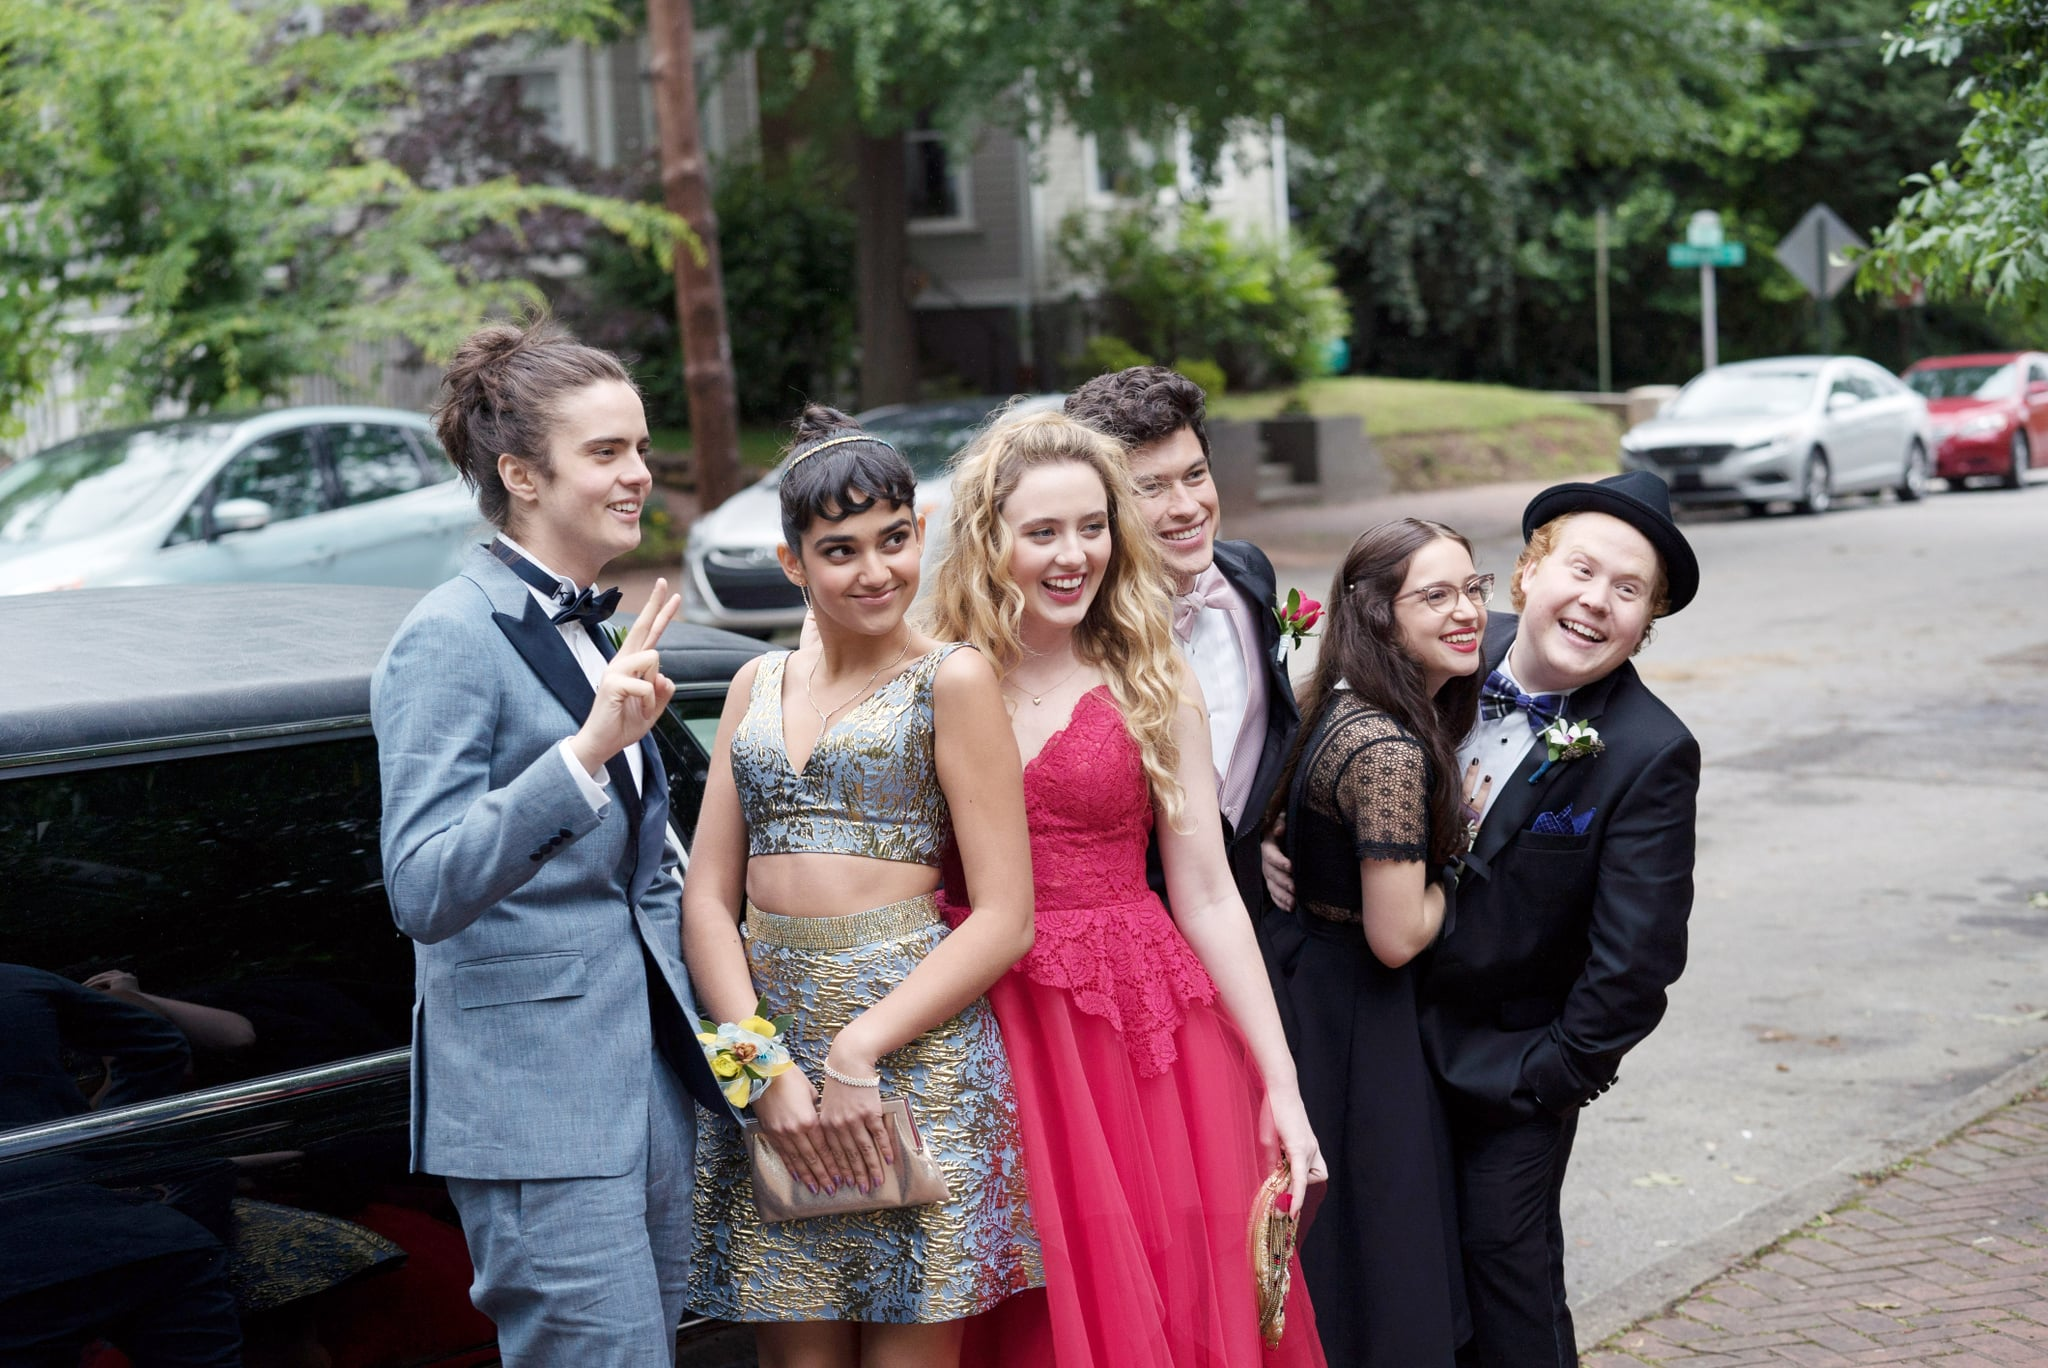 BLOCKERS, from left: Miles Robbins, Geraldine Viswanathan, Kathryn Newton, Graham Phillips, Gideon Adlon, Jimmy Bellinger, 2018. ph: Quantrell D. Colbert / Universal Pictures /Courtesy Everett Collection